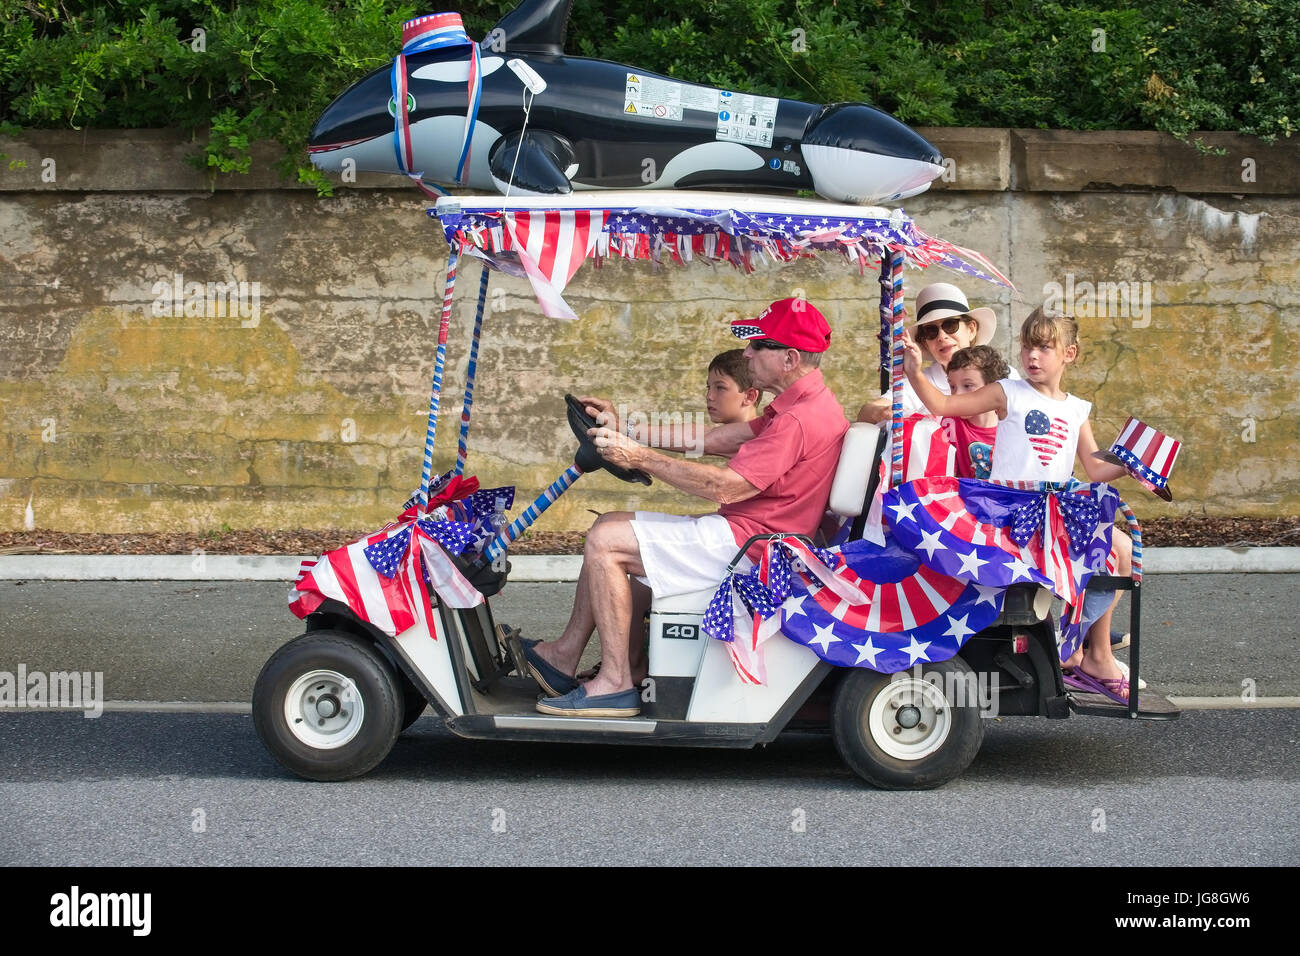 Sullivan's Island, South Carolina, USA. 4th July, 2017. A family rides along in a golf cart decorated in patriotic - Stock Image